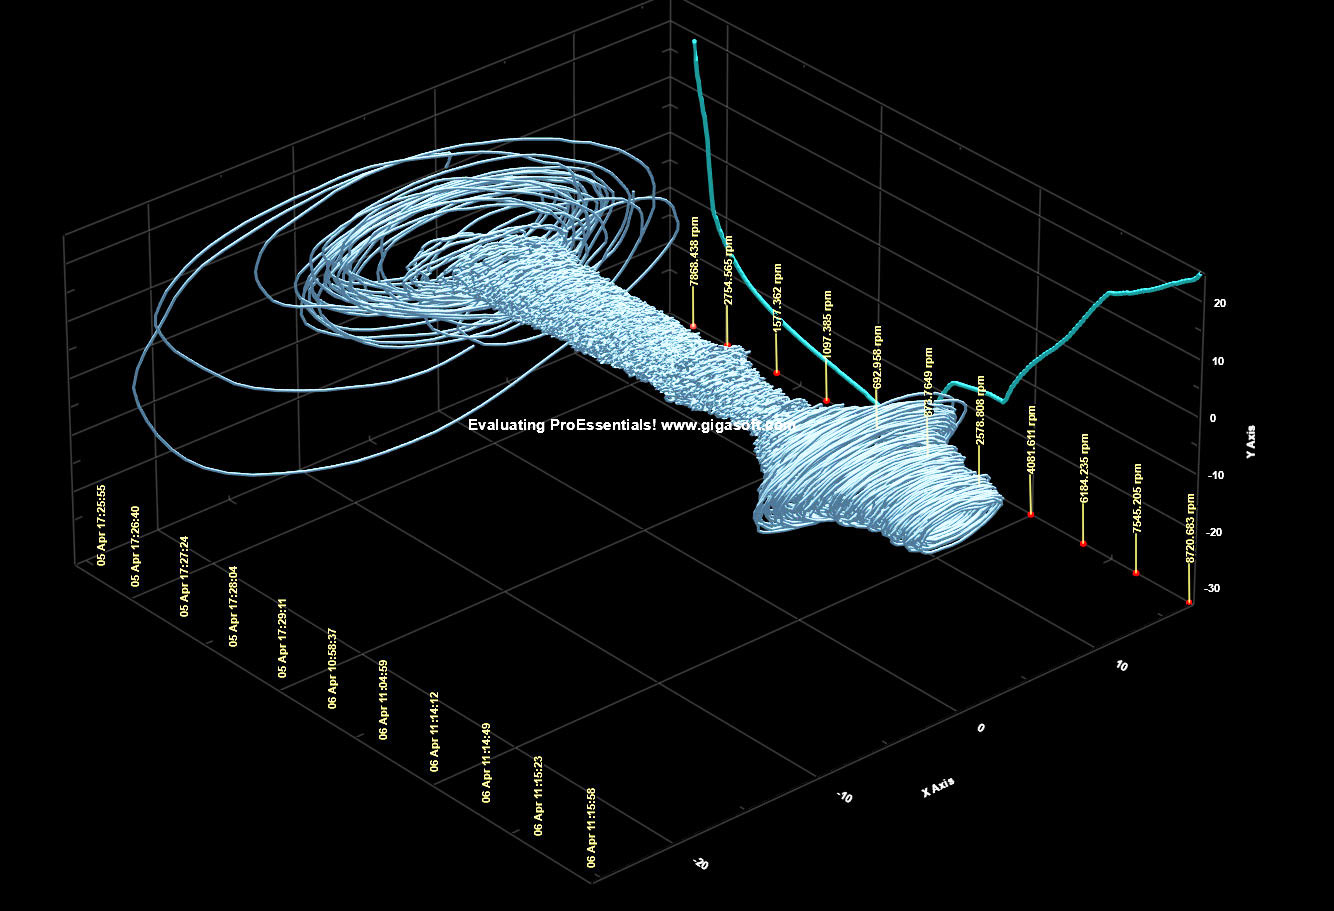 .Net Chart WPF Direct3D 3D Charting rotation vibration bearing data as 3D scatter data.